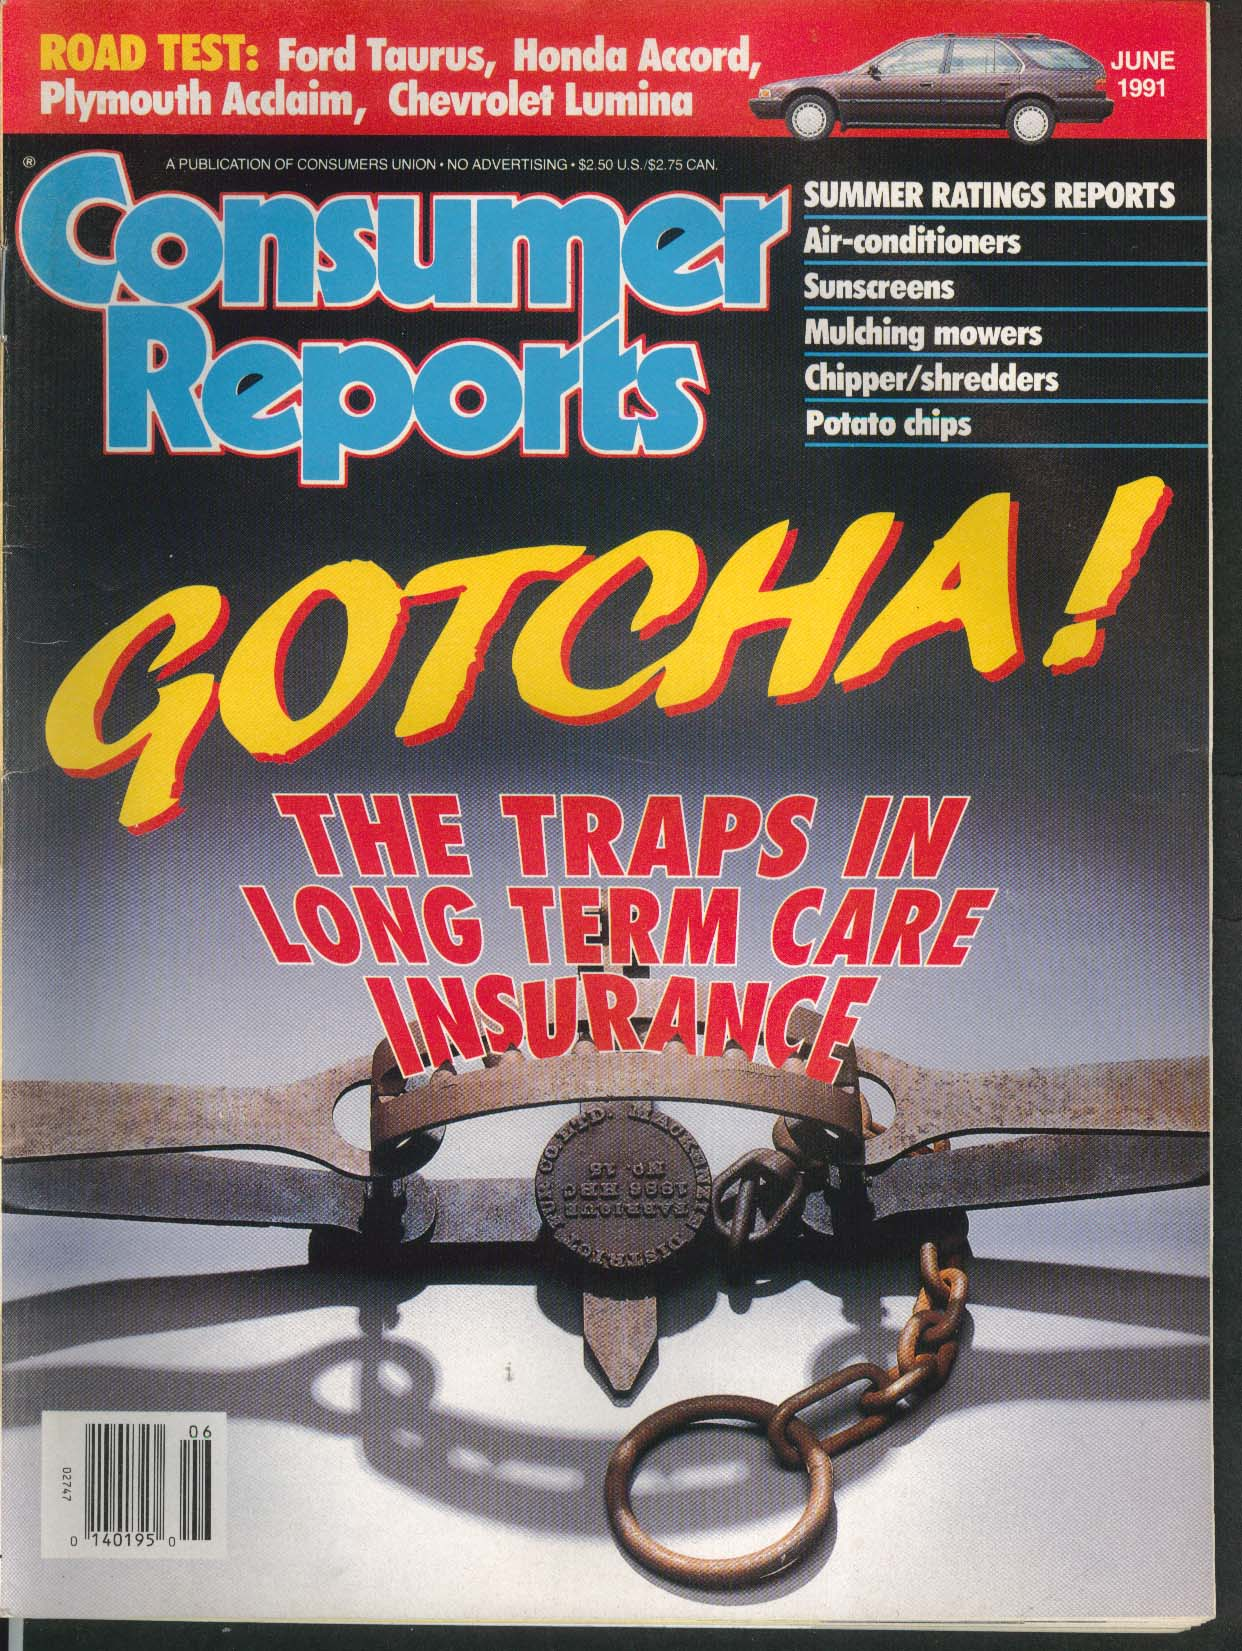 CONSUMER REPORTS Ford Taurus Honda Accord Plymouth Acclaim Chevy Lumina 6 1991